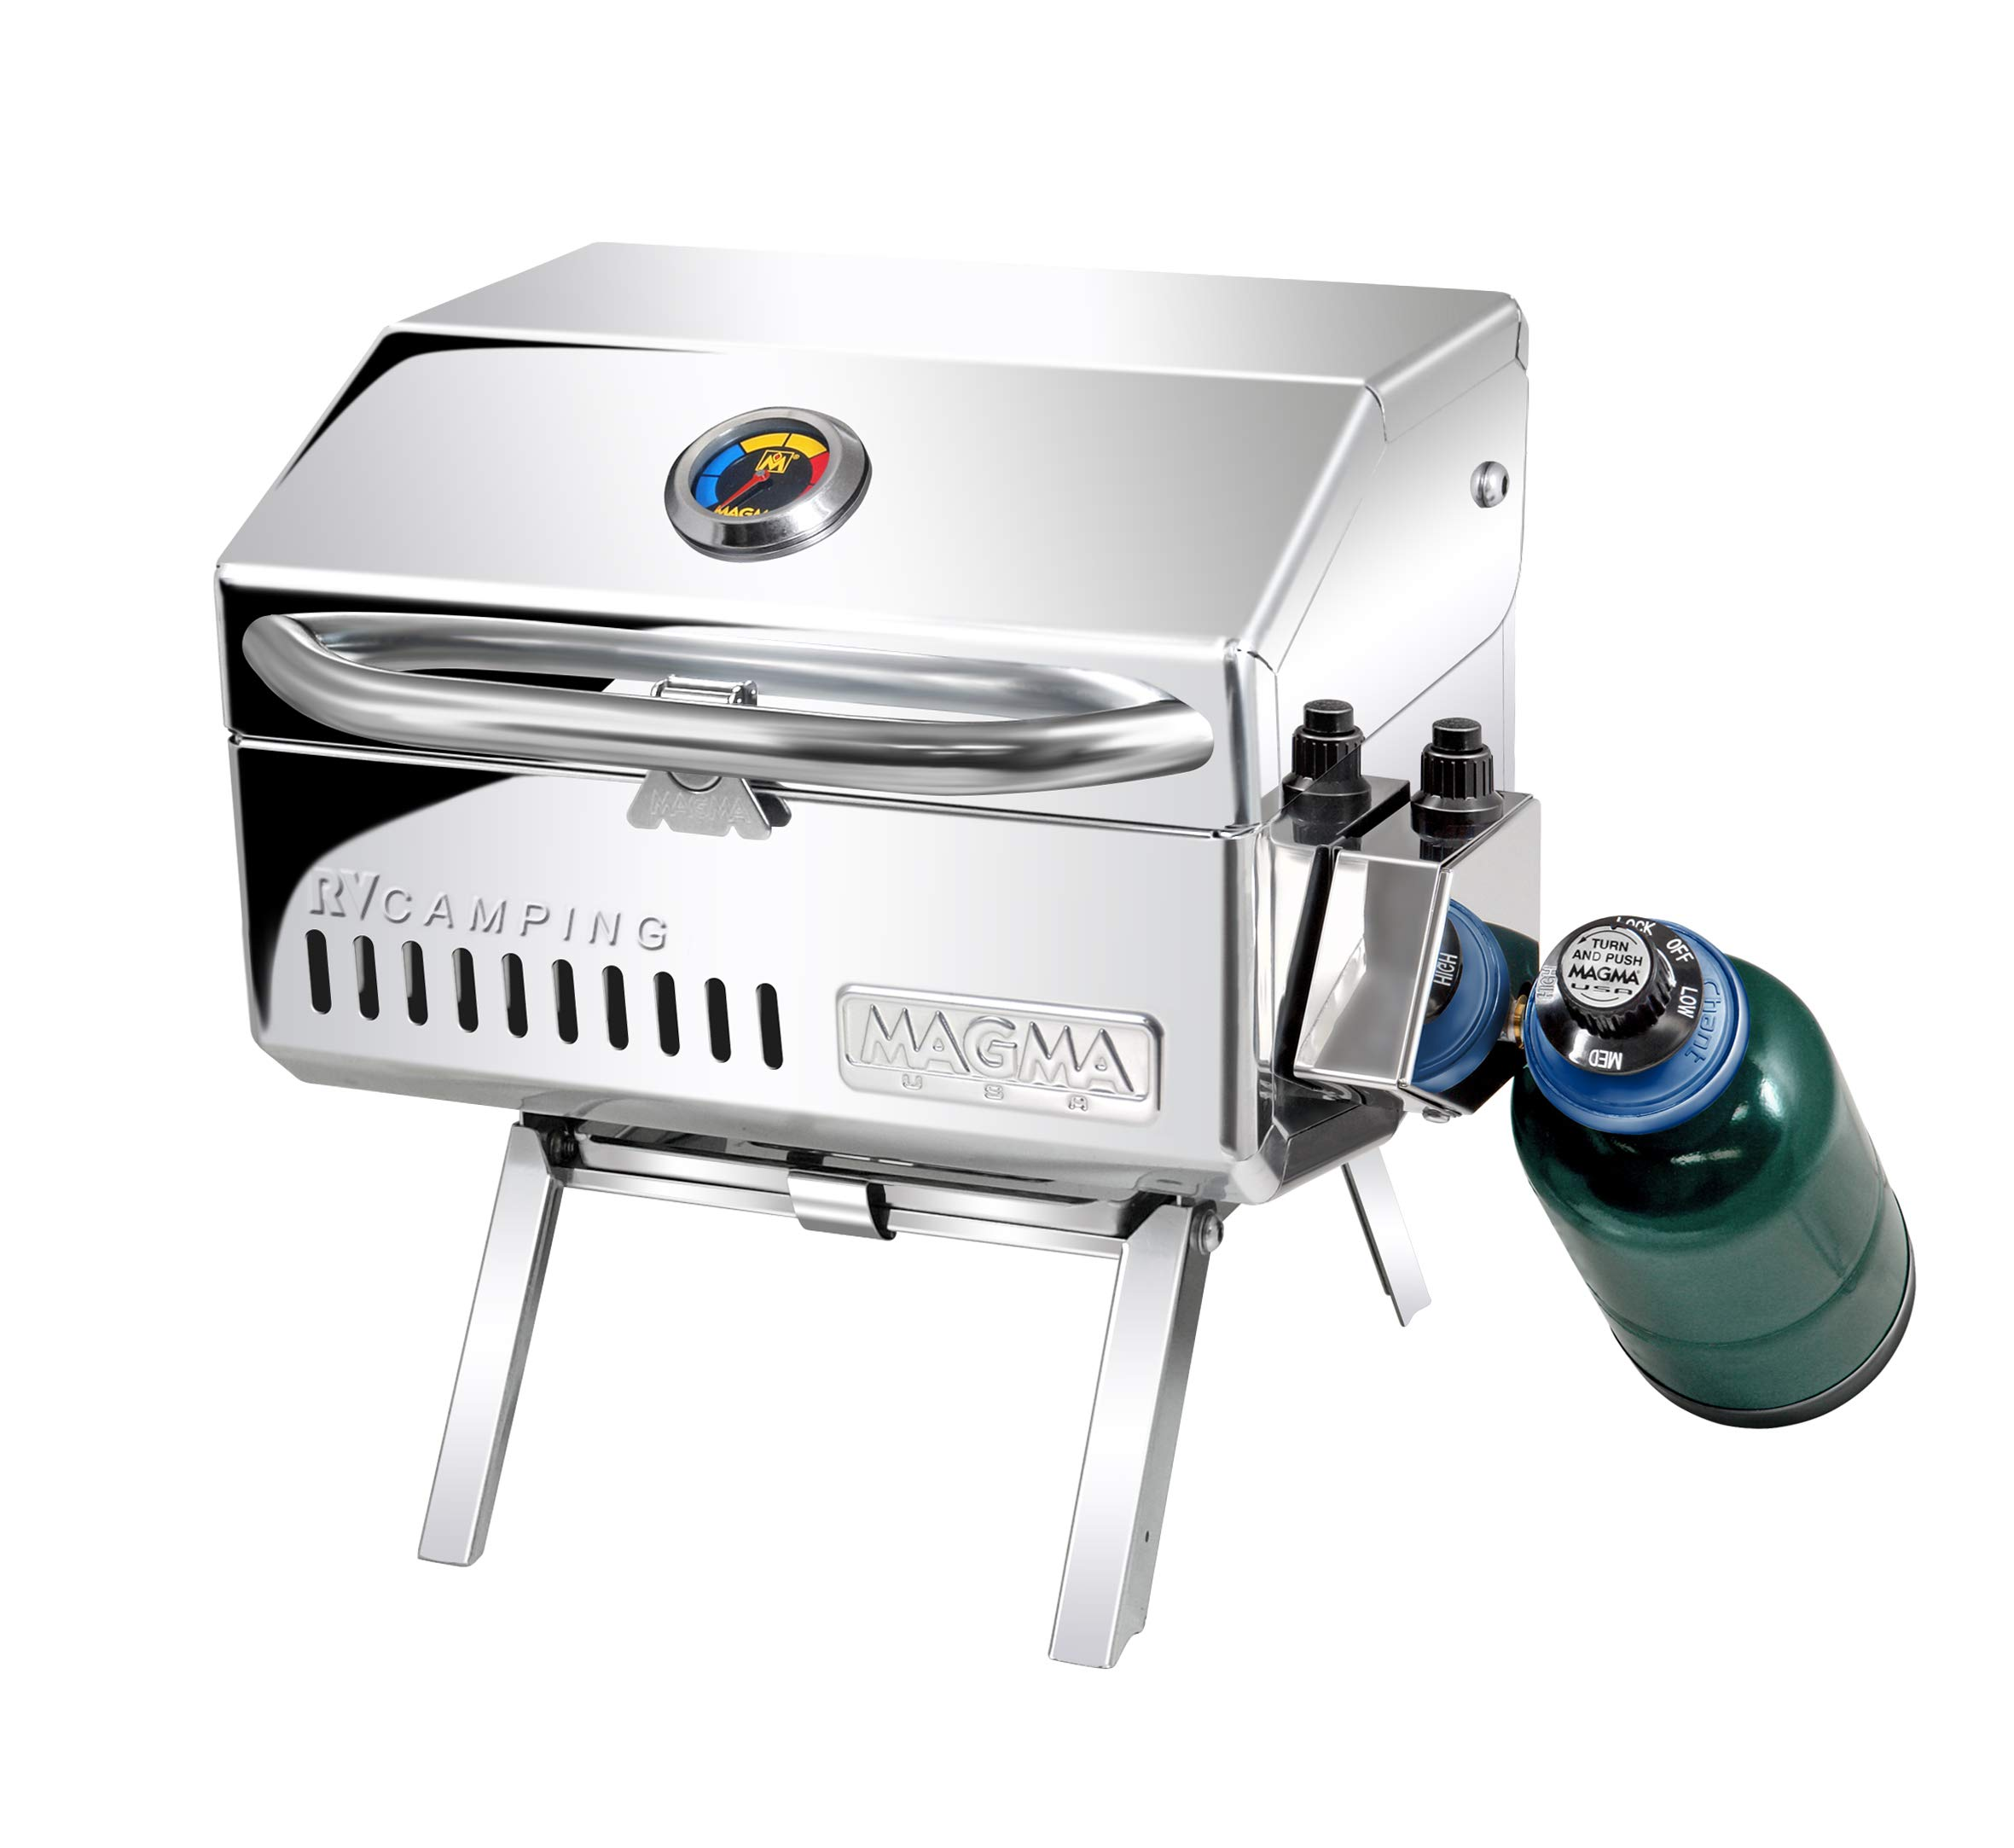 Magma C10601T Mesquite, Traveler Series Gas Grill, One Size Stainless Steel